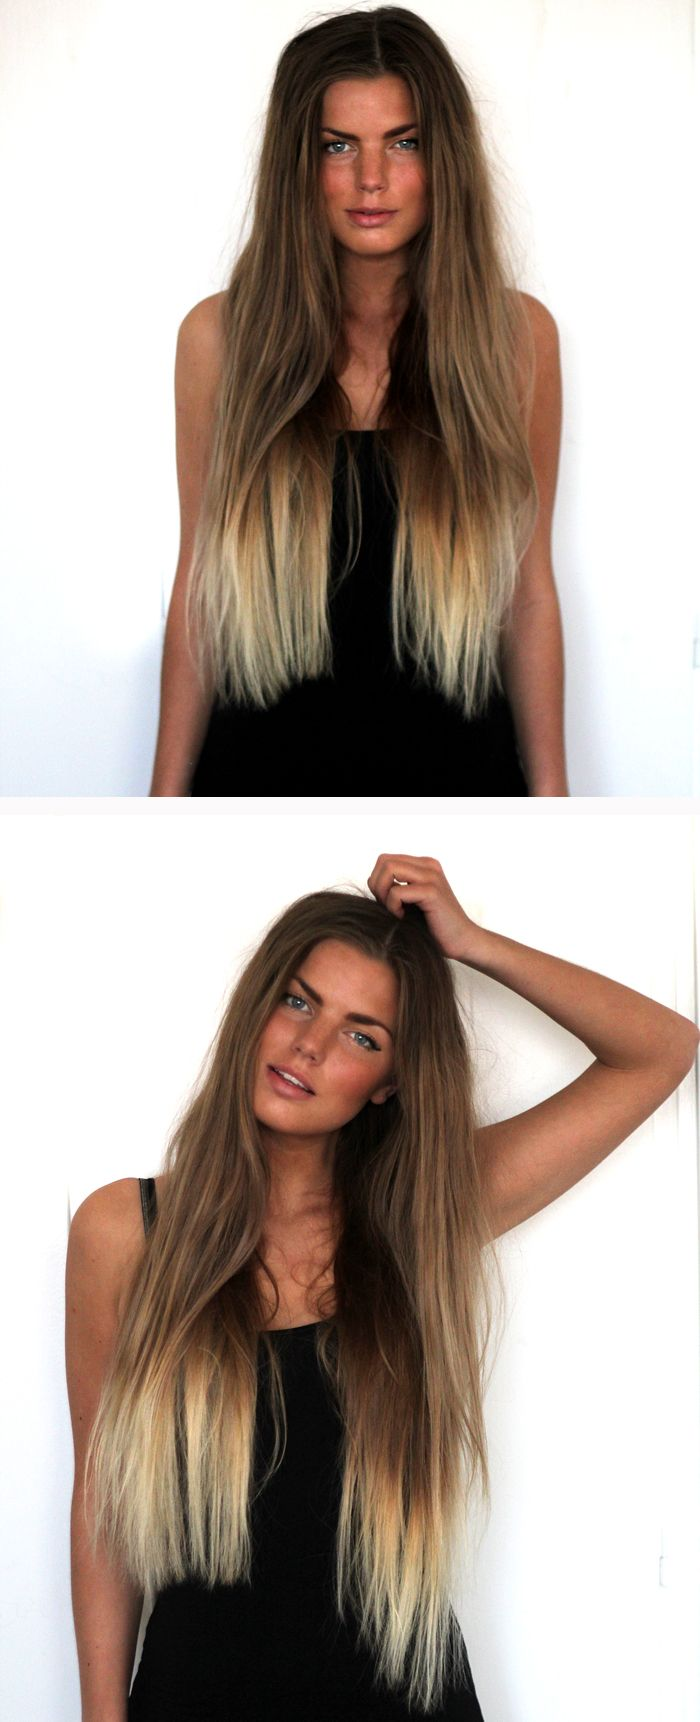 If I had long hair, I would deff do this!